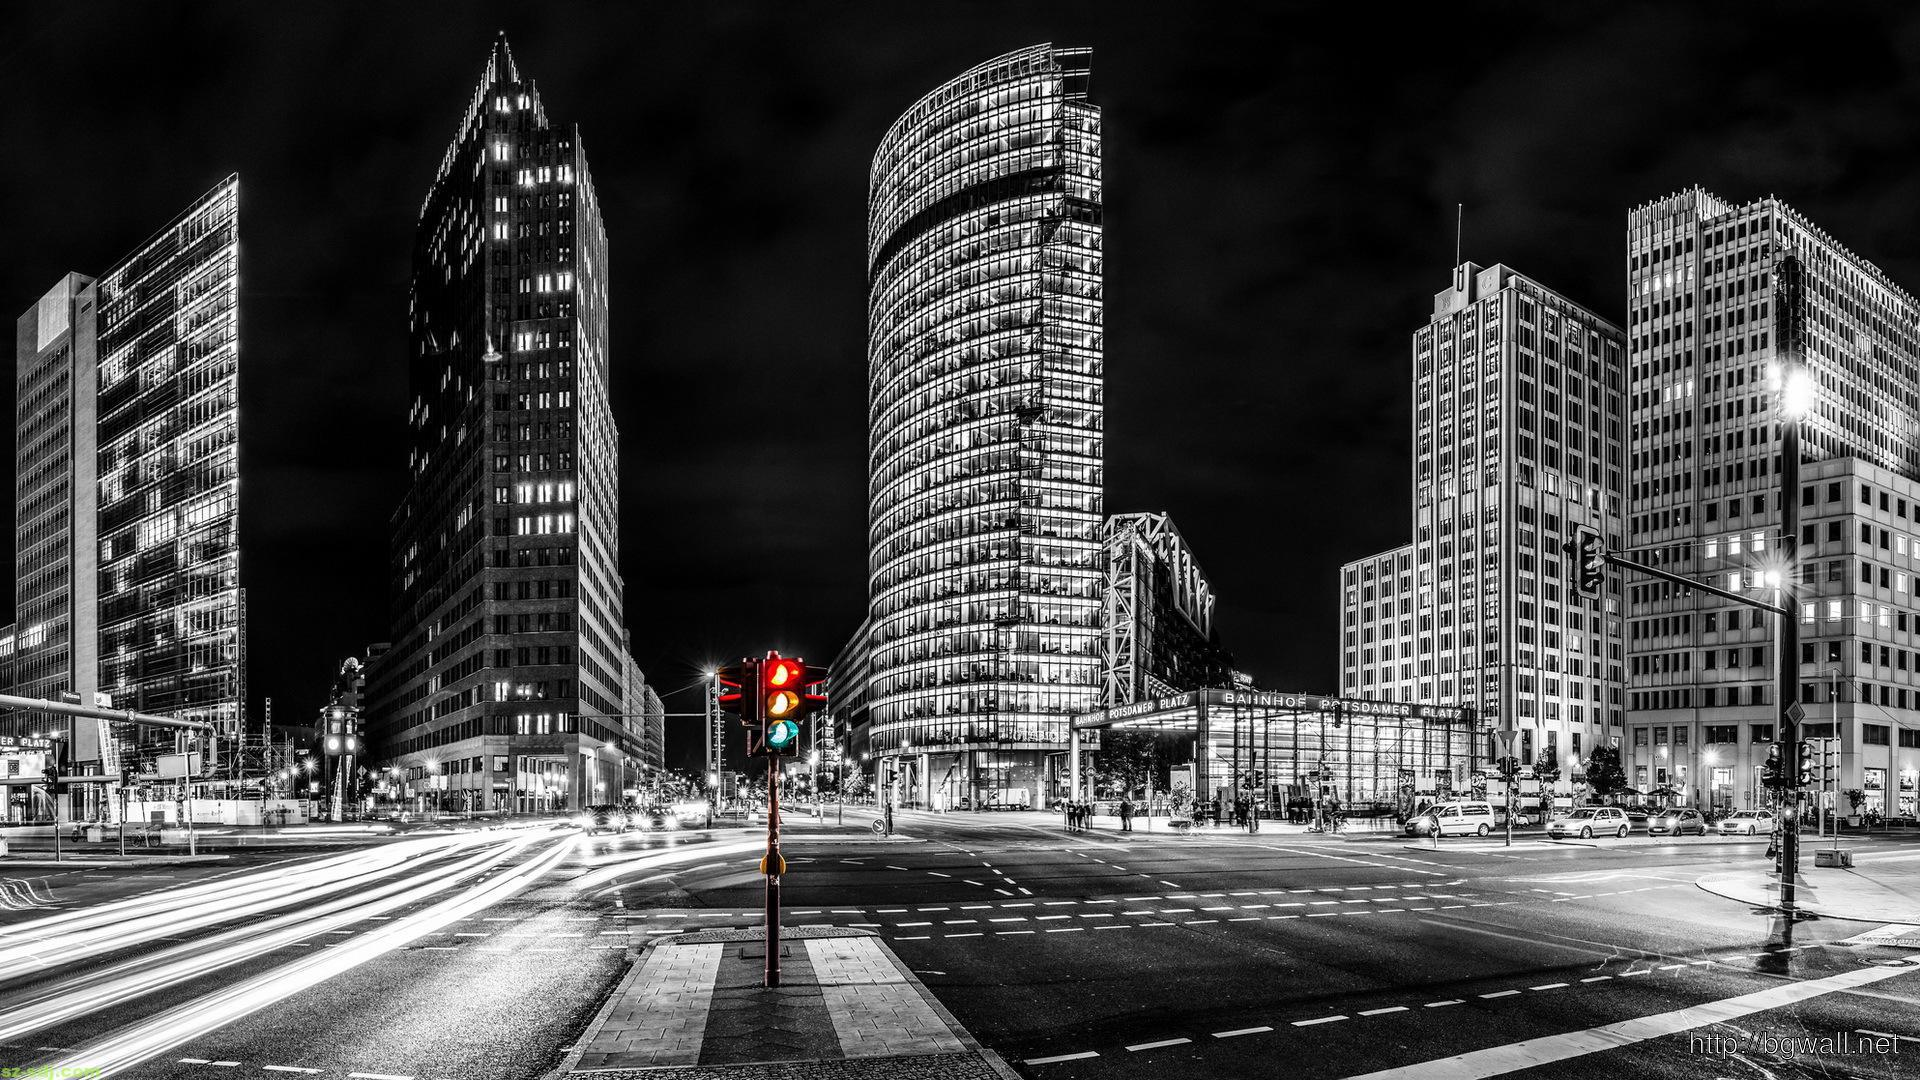 awesome-grayscale-photography-with-traffic-ight-berlin-wallpaper-high-quality